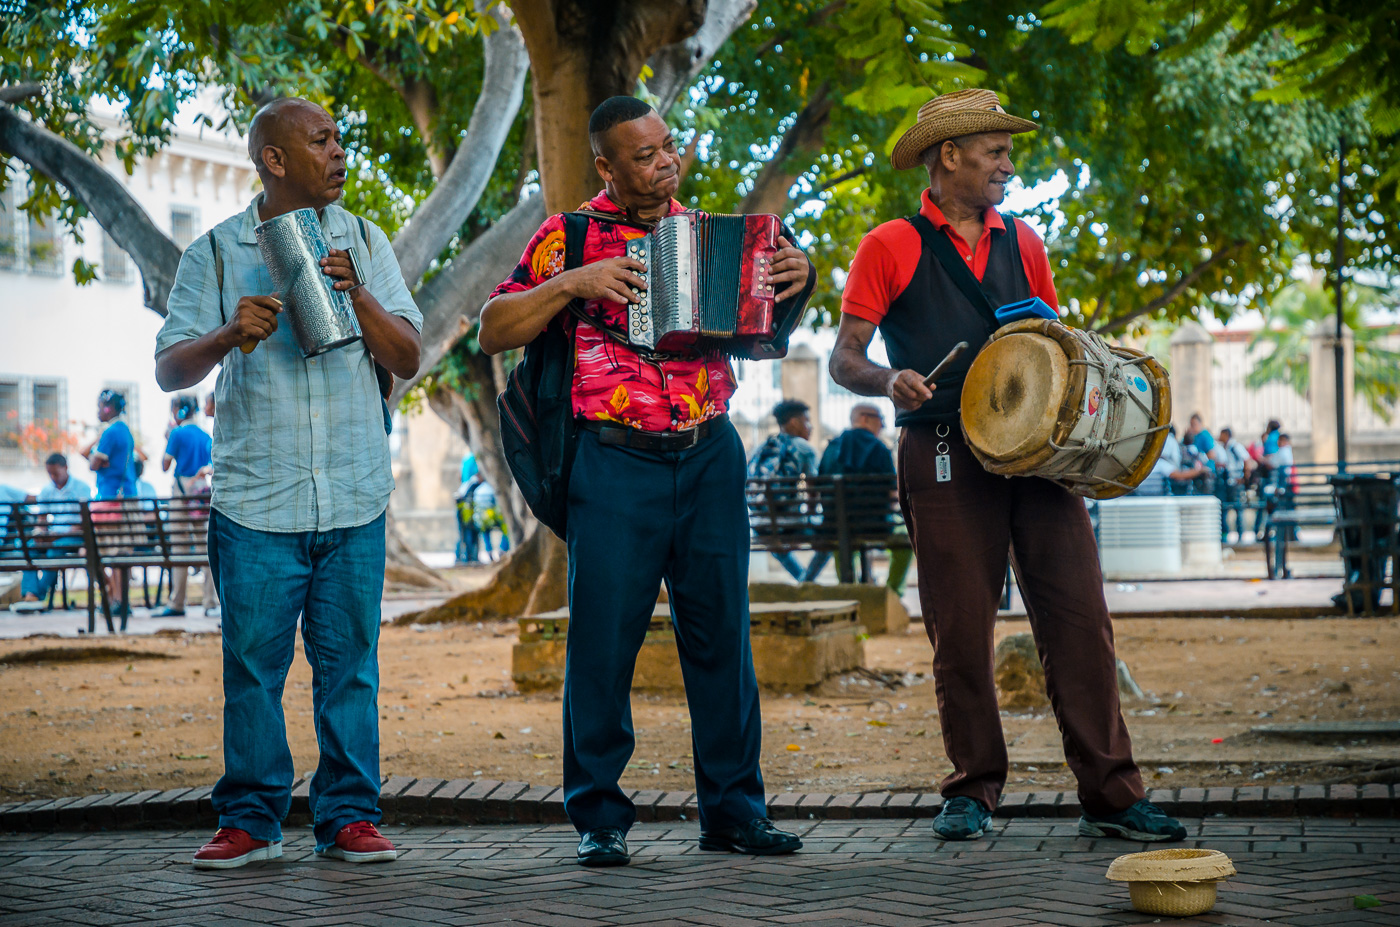 Musicians at Parque Colon, Santo Domingo